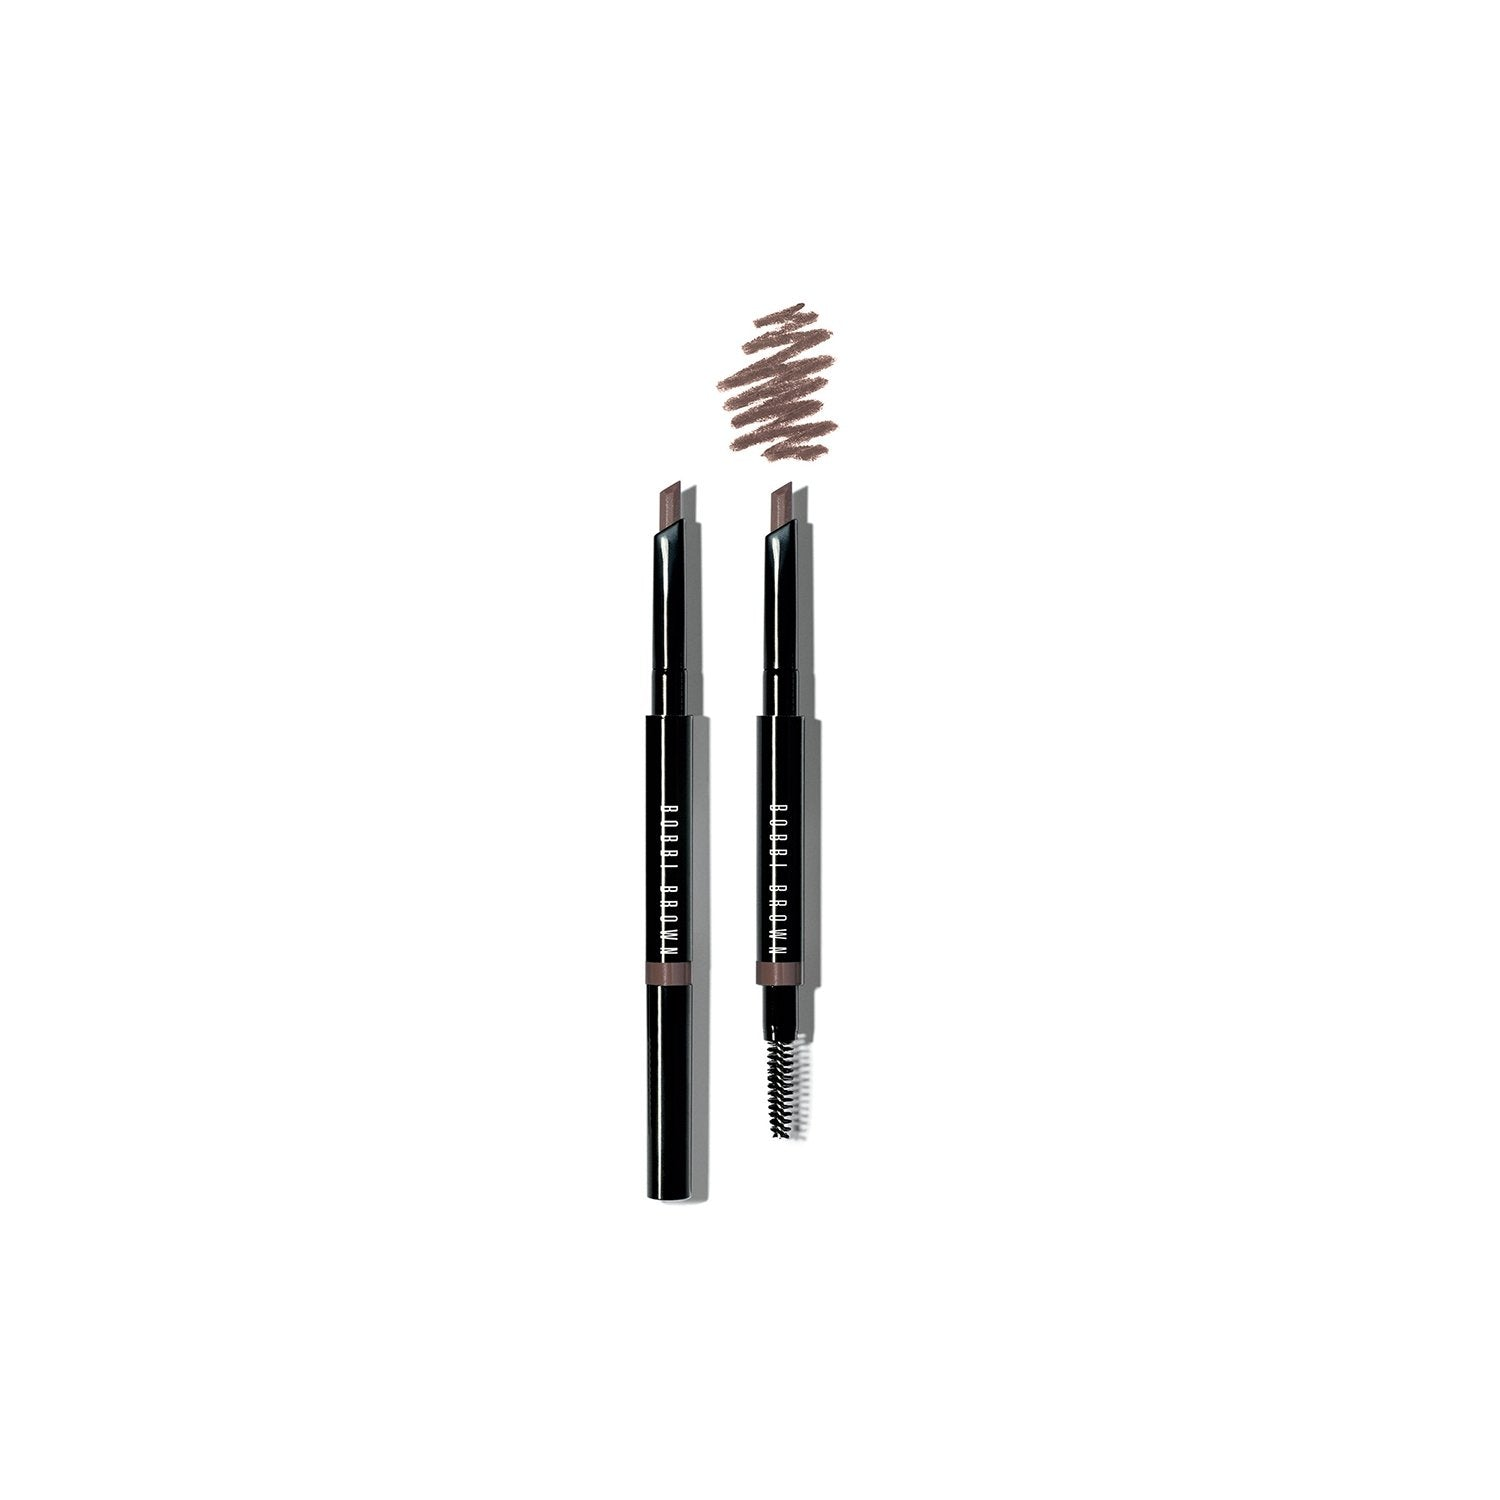 Bobbi Brown Duo Longwear Brow Pencil Mahogan